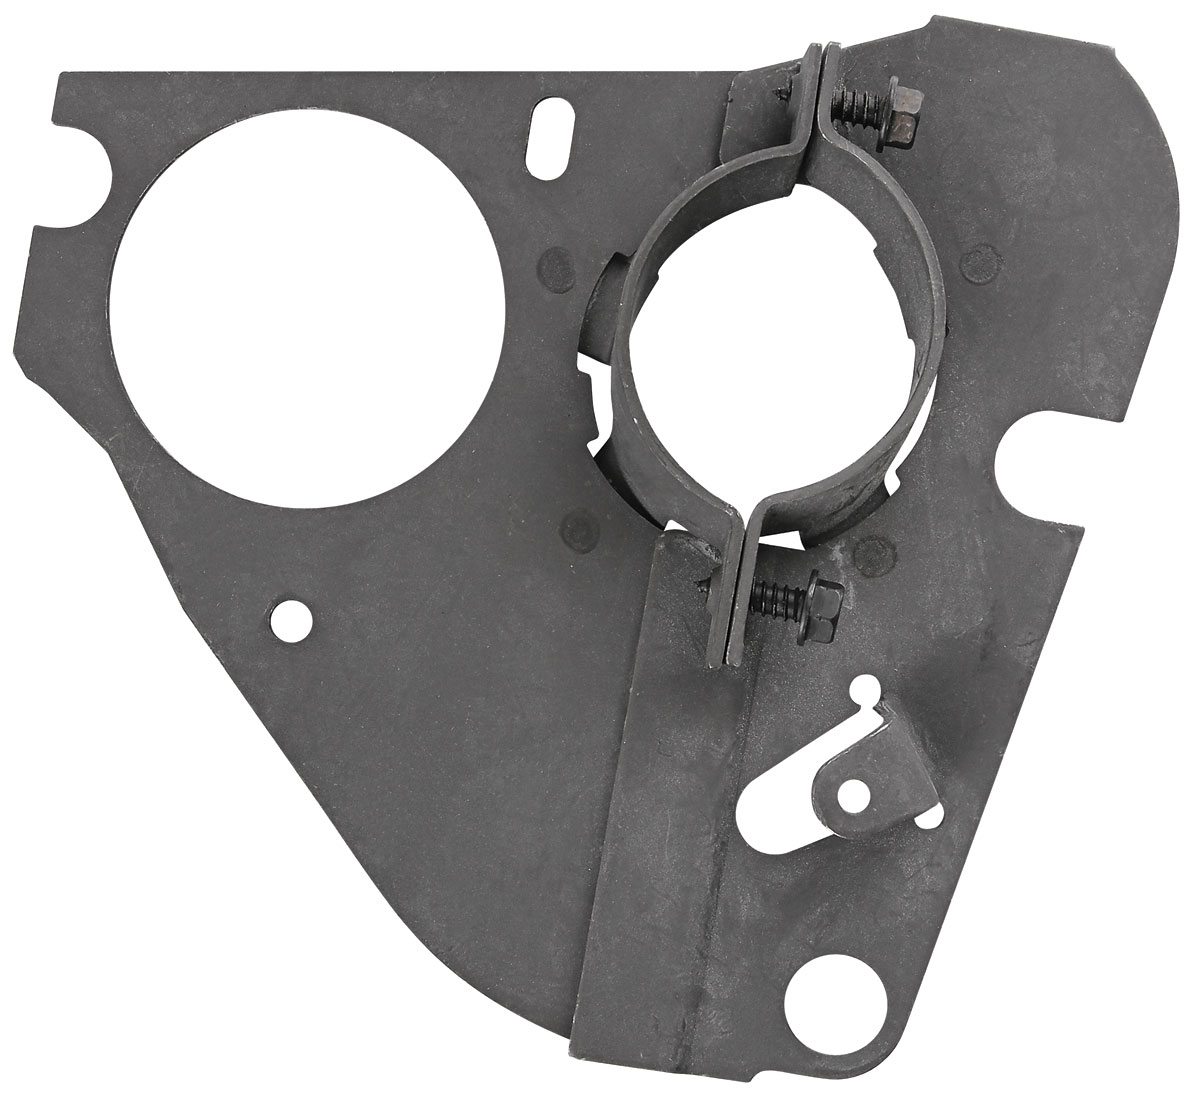 Photo of LeMans Steering Column Clamp Plates, Lower manual